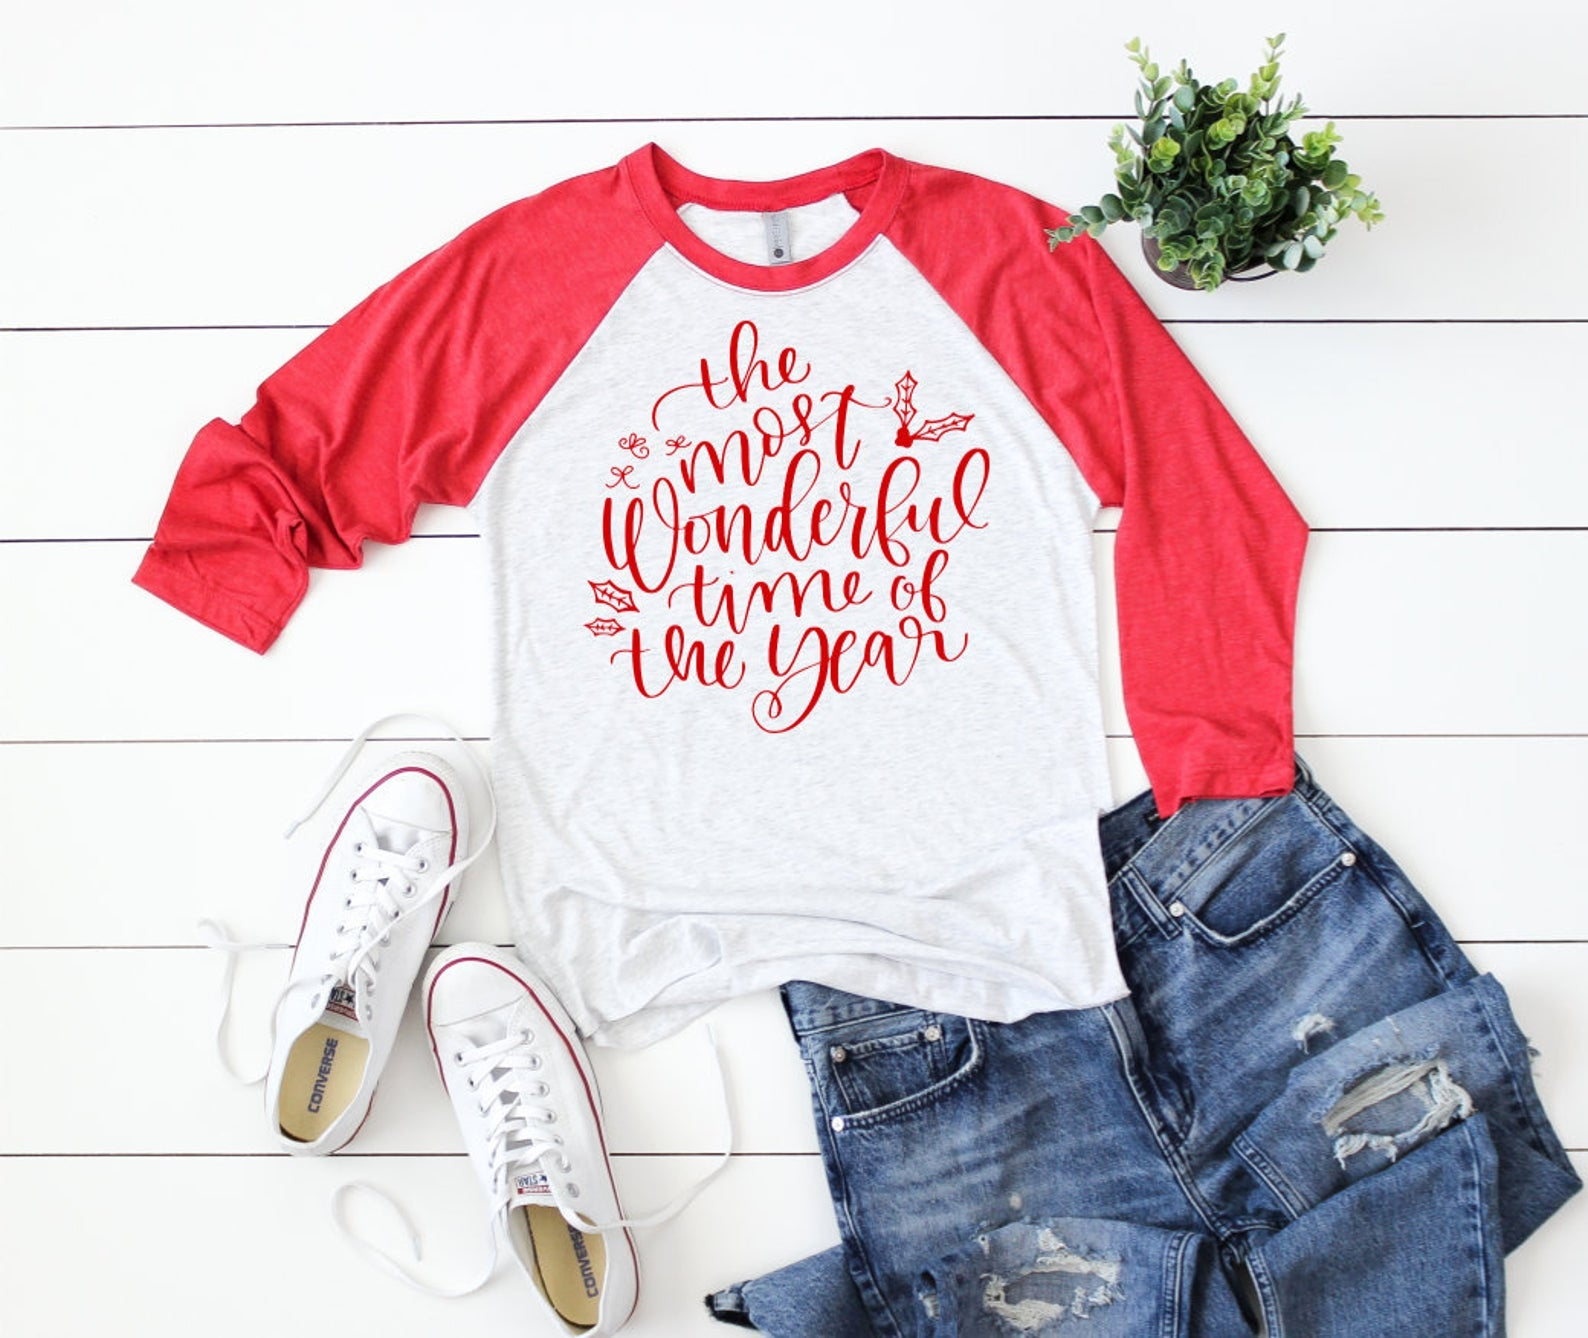 Most Wonderful Time of the Year 3/4 Sleeve T-shirt - Christmas Raglans - Cute Christmas T-Shirt - Custom Christmas Shirts - Xmas Shirts